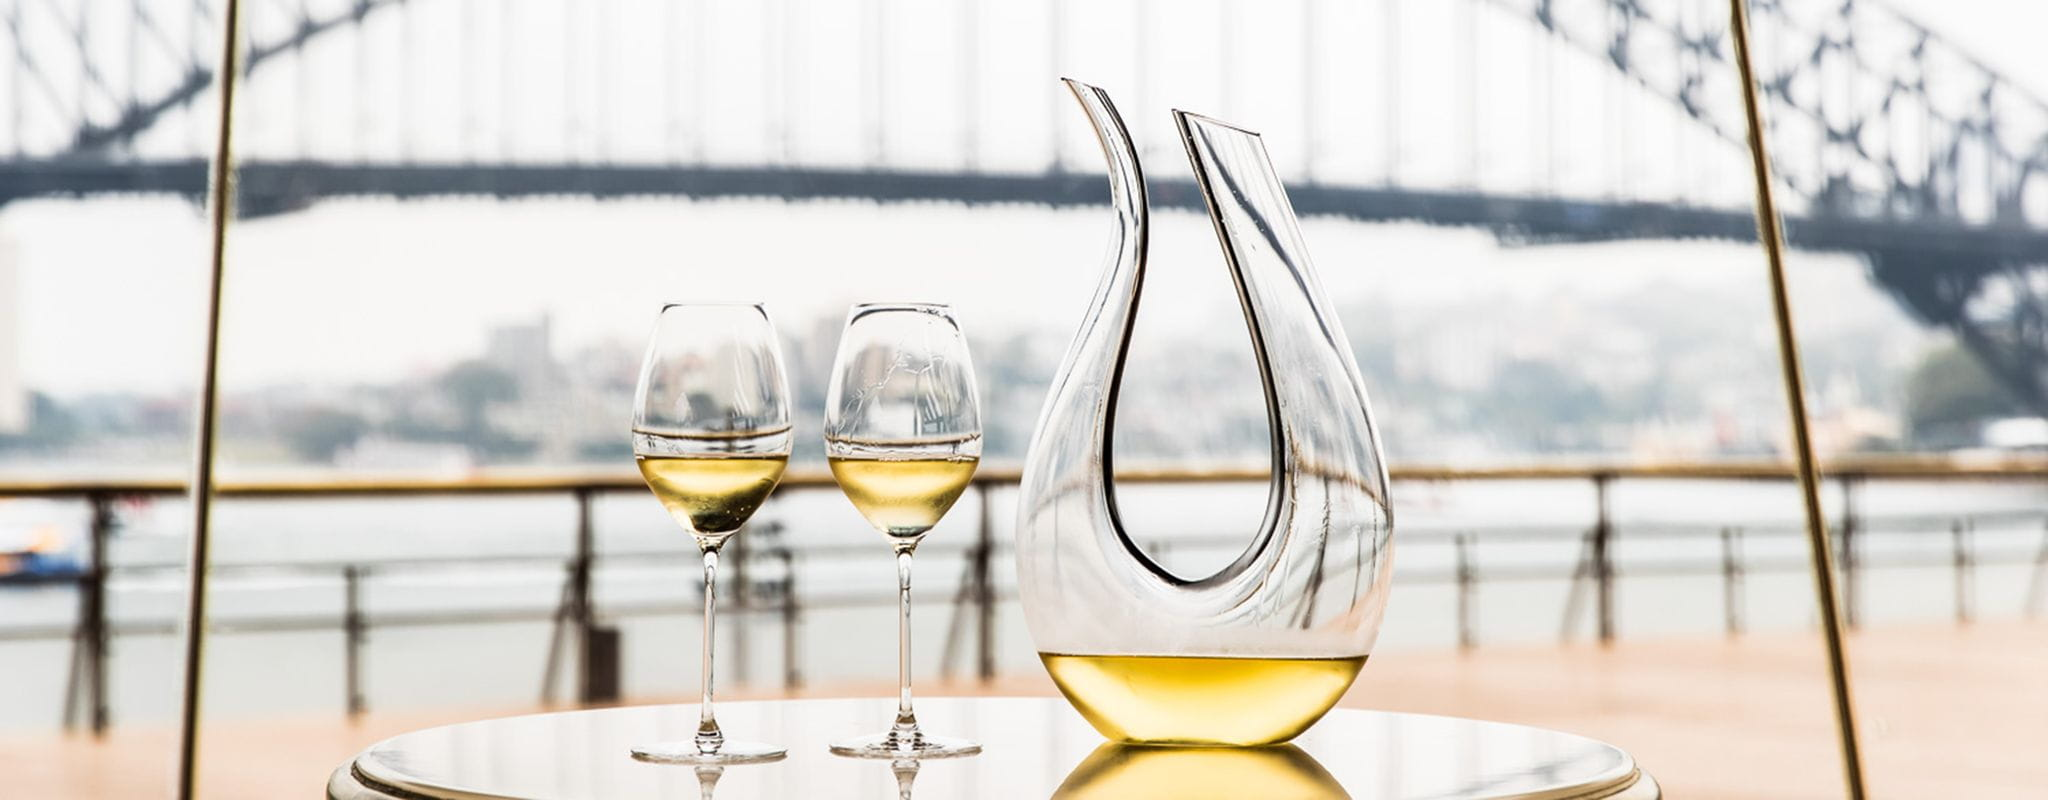 RIEDEL Amadeo Decanter & Veritas Champagne